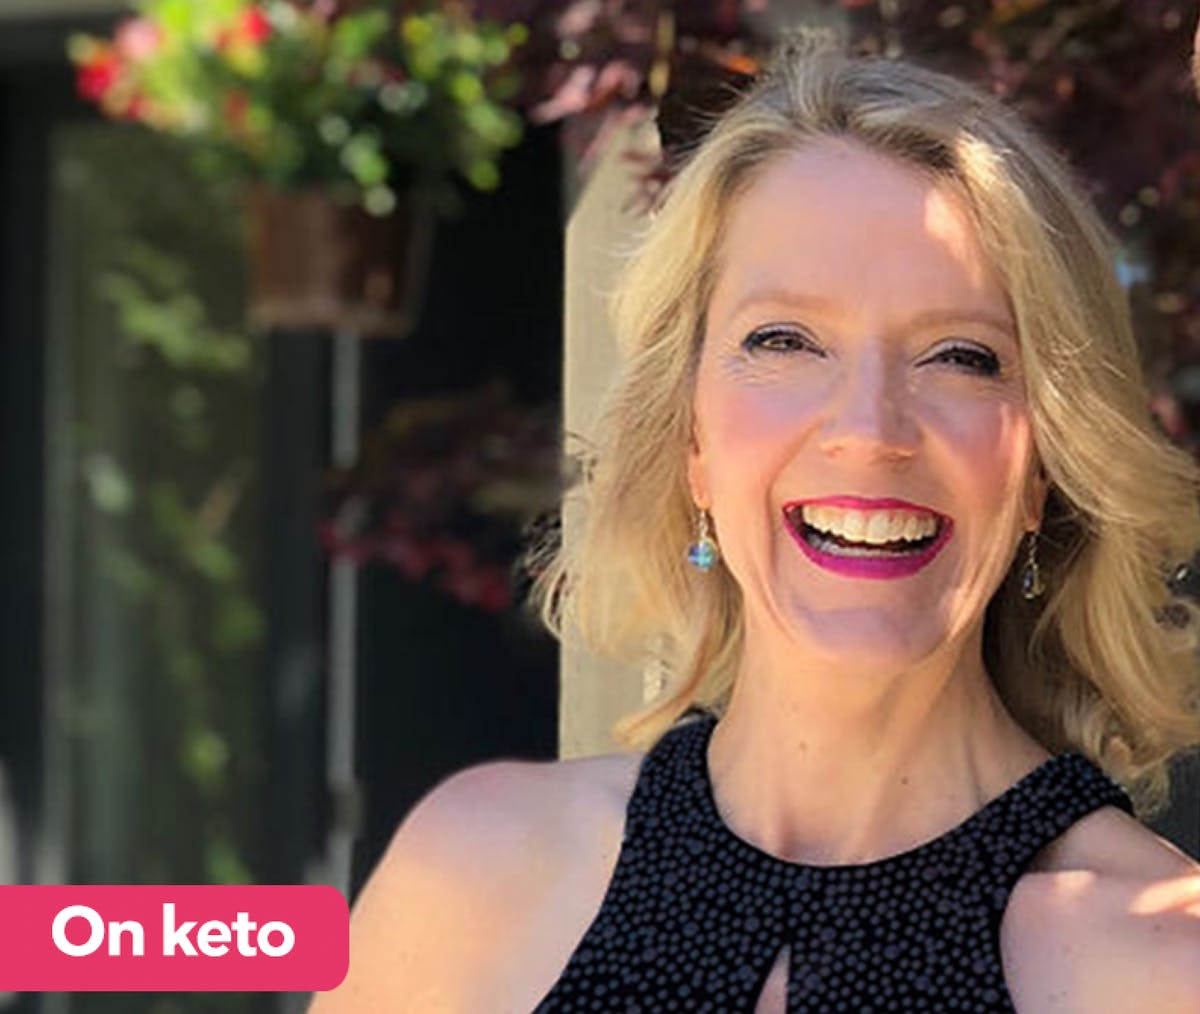 Deborah on keto